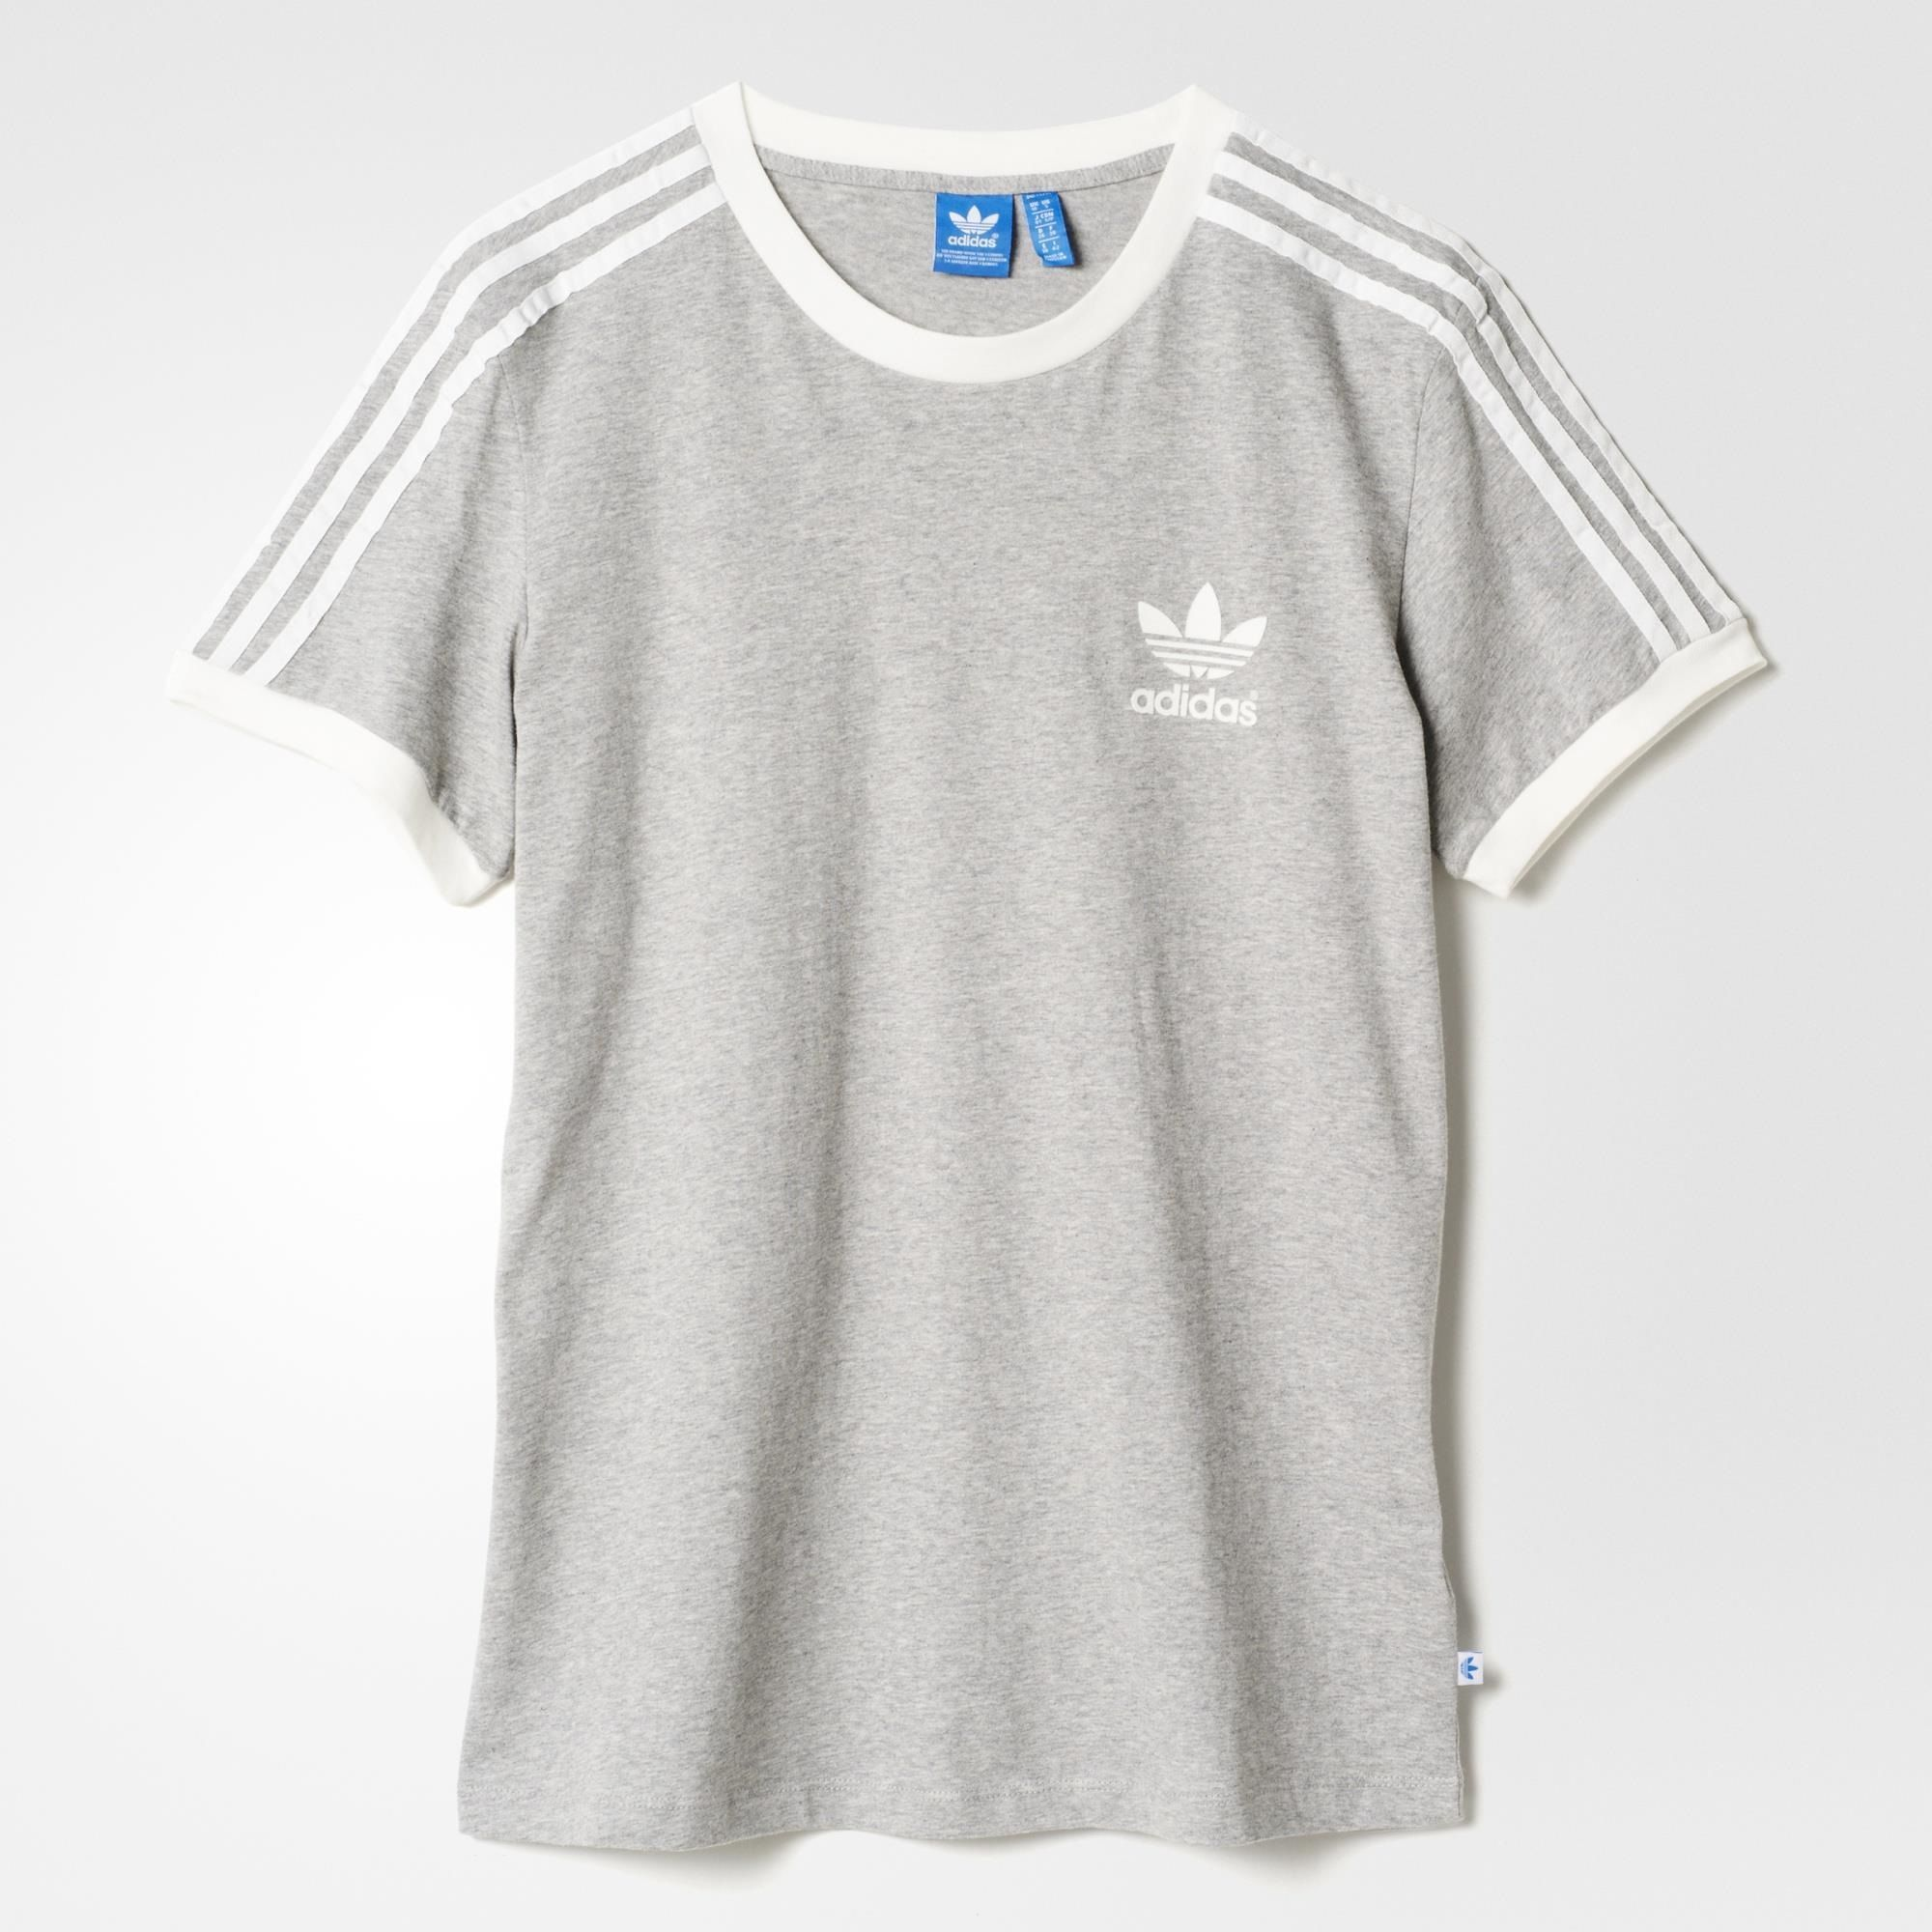 t shirt 3 bandes gris adidas adidas france style pinterest striped tee adidas and gray. Black Bedroom Furniture Sets. Home Design Ideas